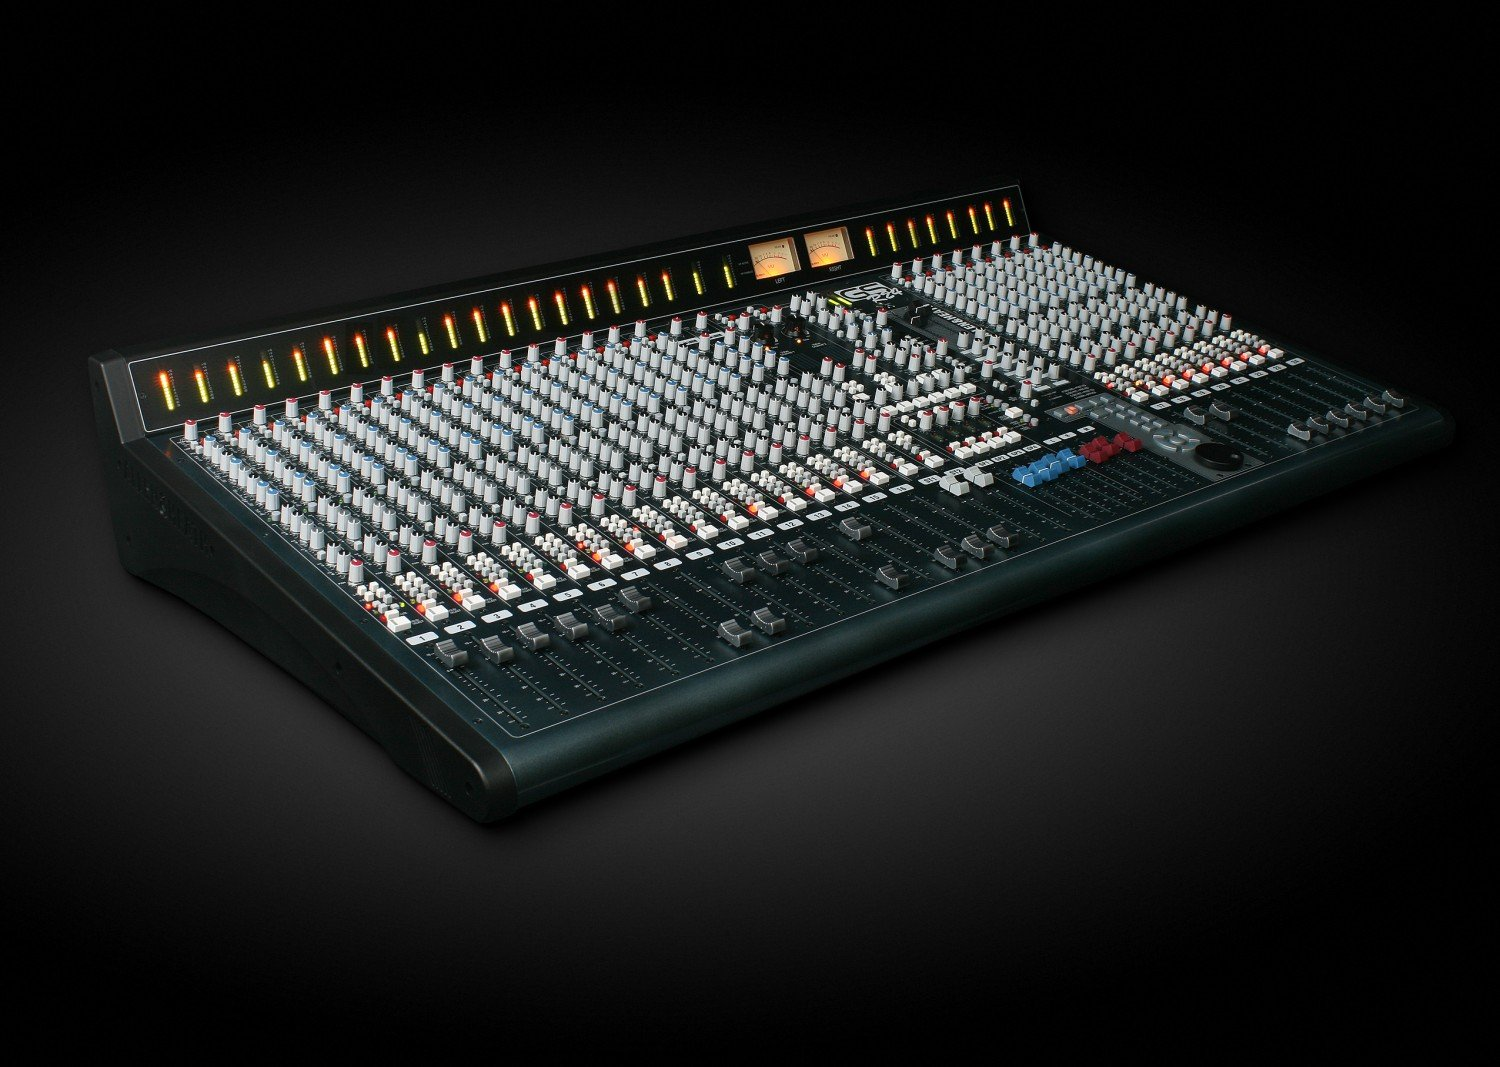 Digital Mixer For Studio Recording : analog summing or analog recording console mixer the addition studio ~ Russianpoet.info Haus und Dekorationen